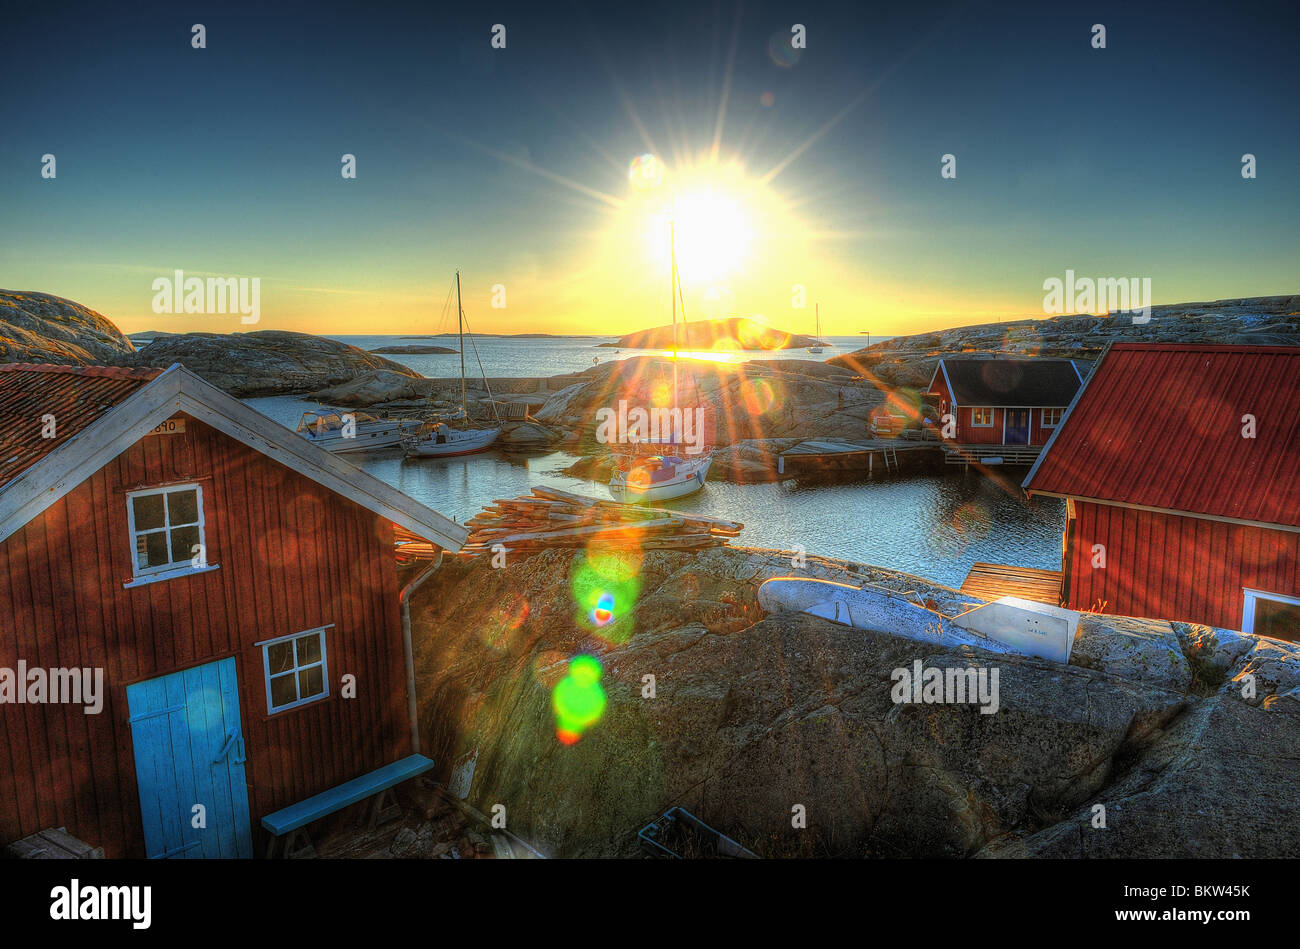 Sunset over fishing village - Stock Image